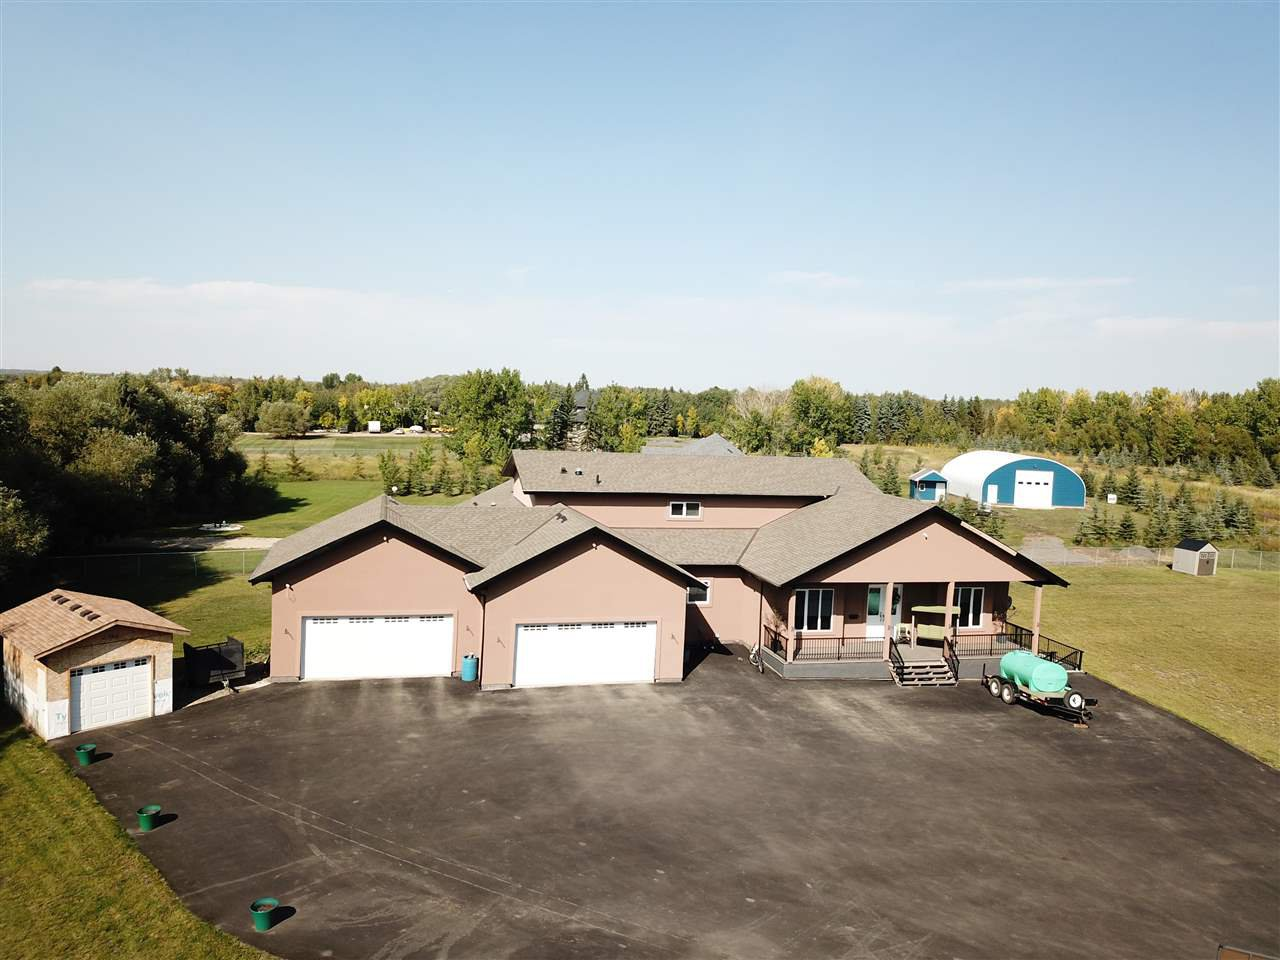 Main Photo: 200, 23549 Twp Rd 510: Rural Leduc County House for sale : MLS®# E4185348